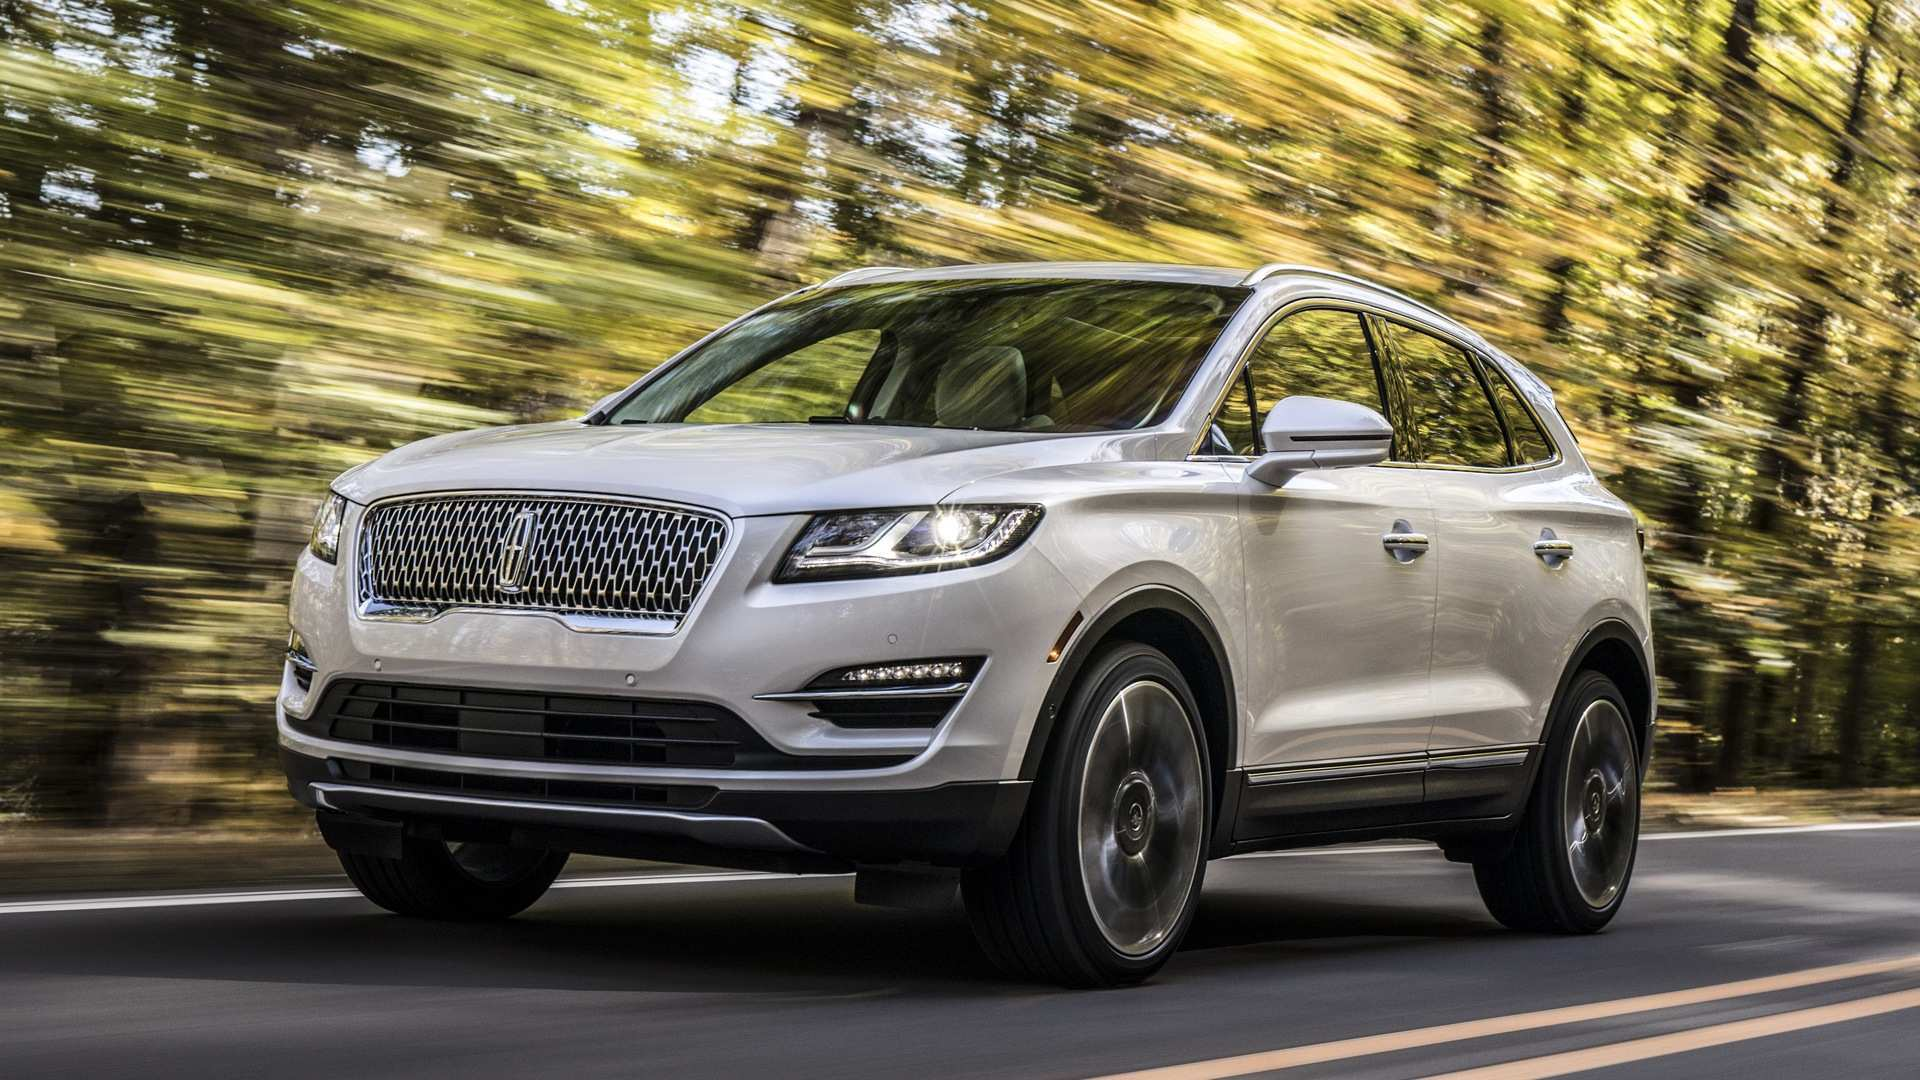 41 All New 2019 Lincoln MKS Spy Photos Price And Release Date